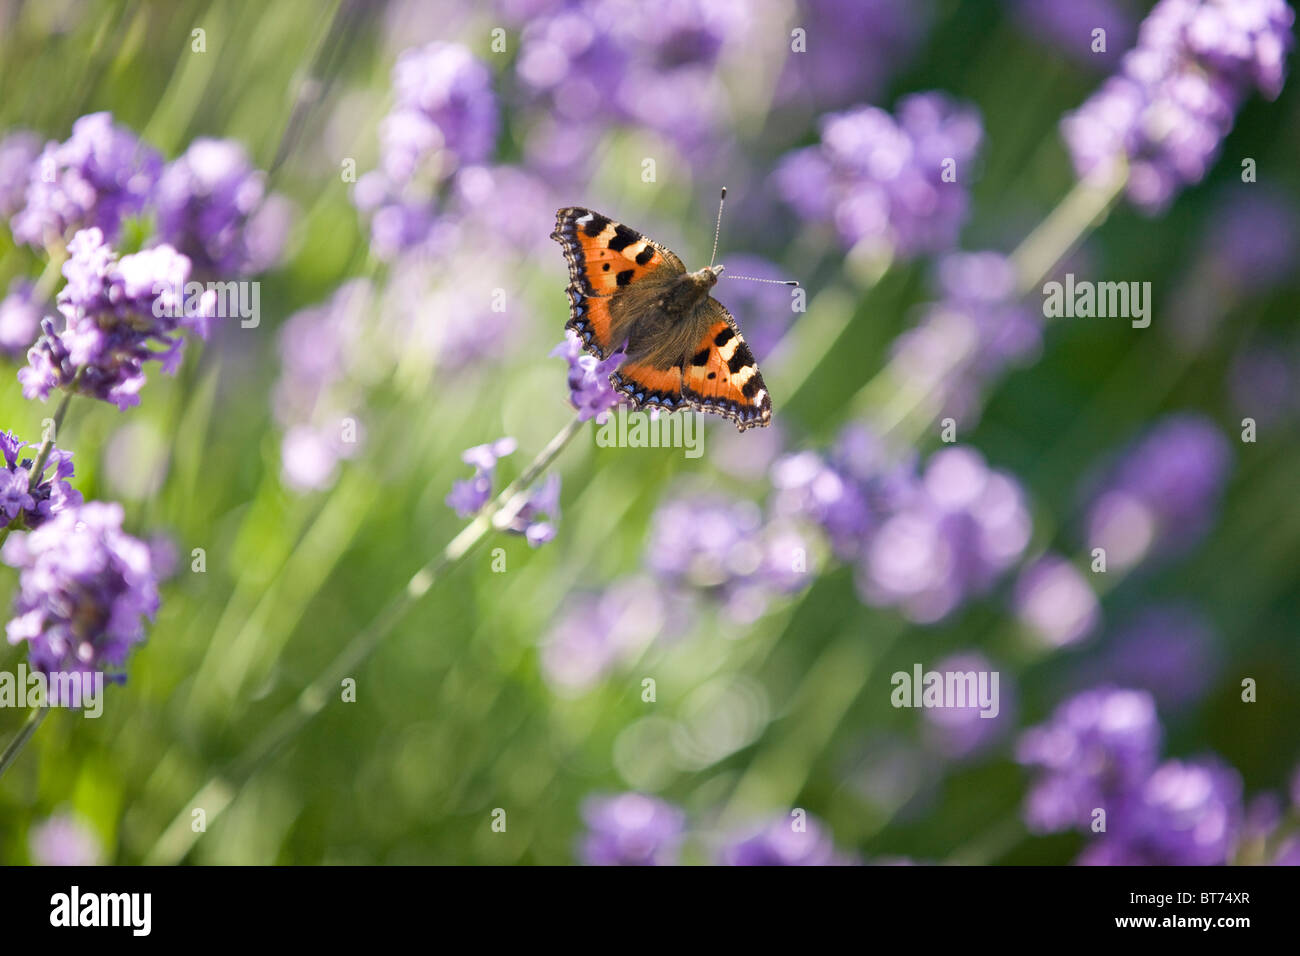 A tortoiseshell butterfly on lavender - Stock Image